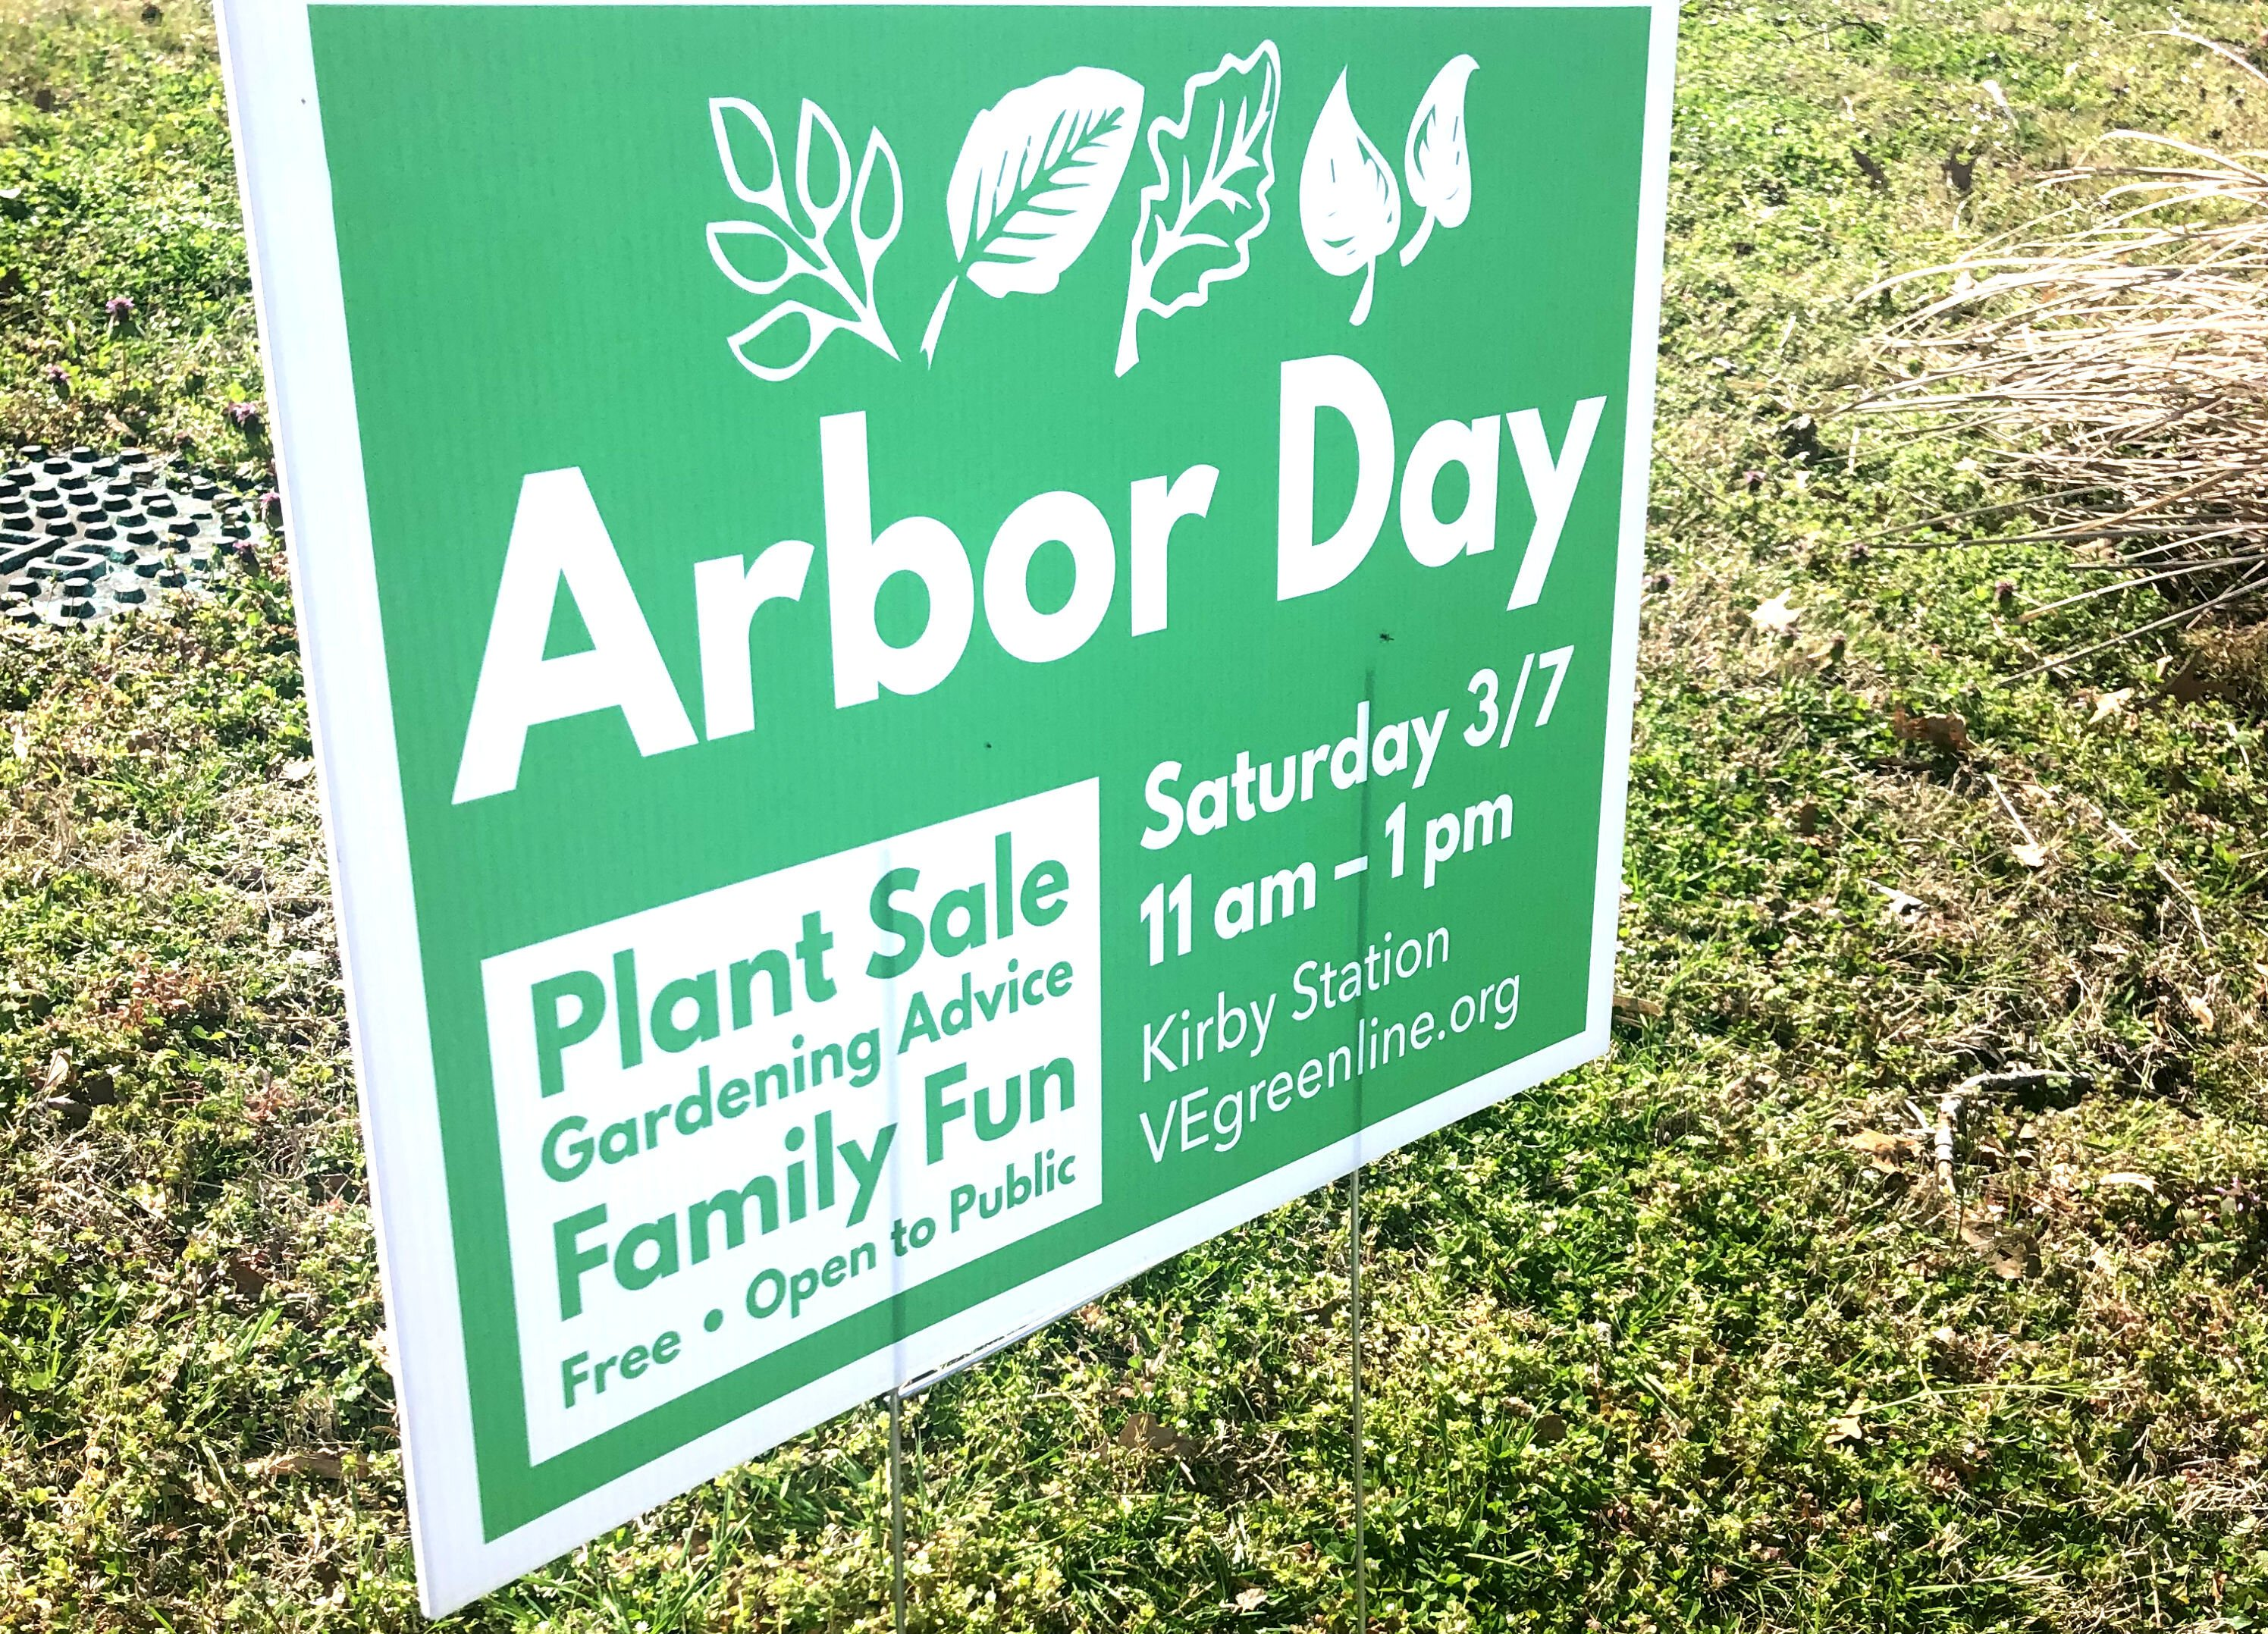 Arbor Day is a national holiday that encourages people to plant trees.This year's Arbor Day Celebration was a first for the V&E Greenline. (Ashley Davis)